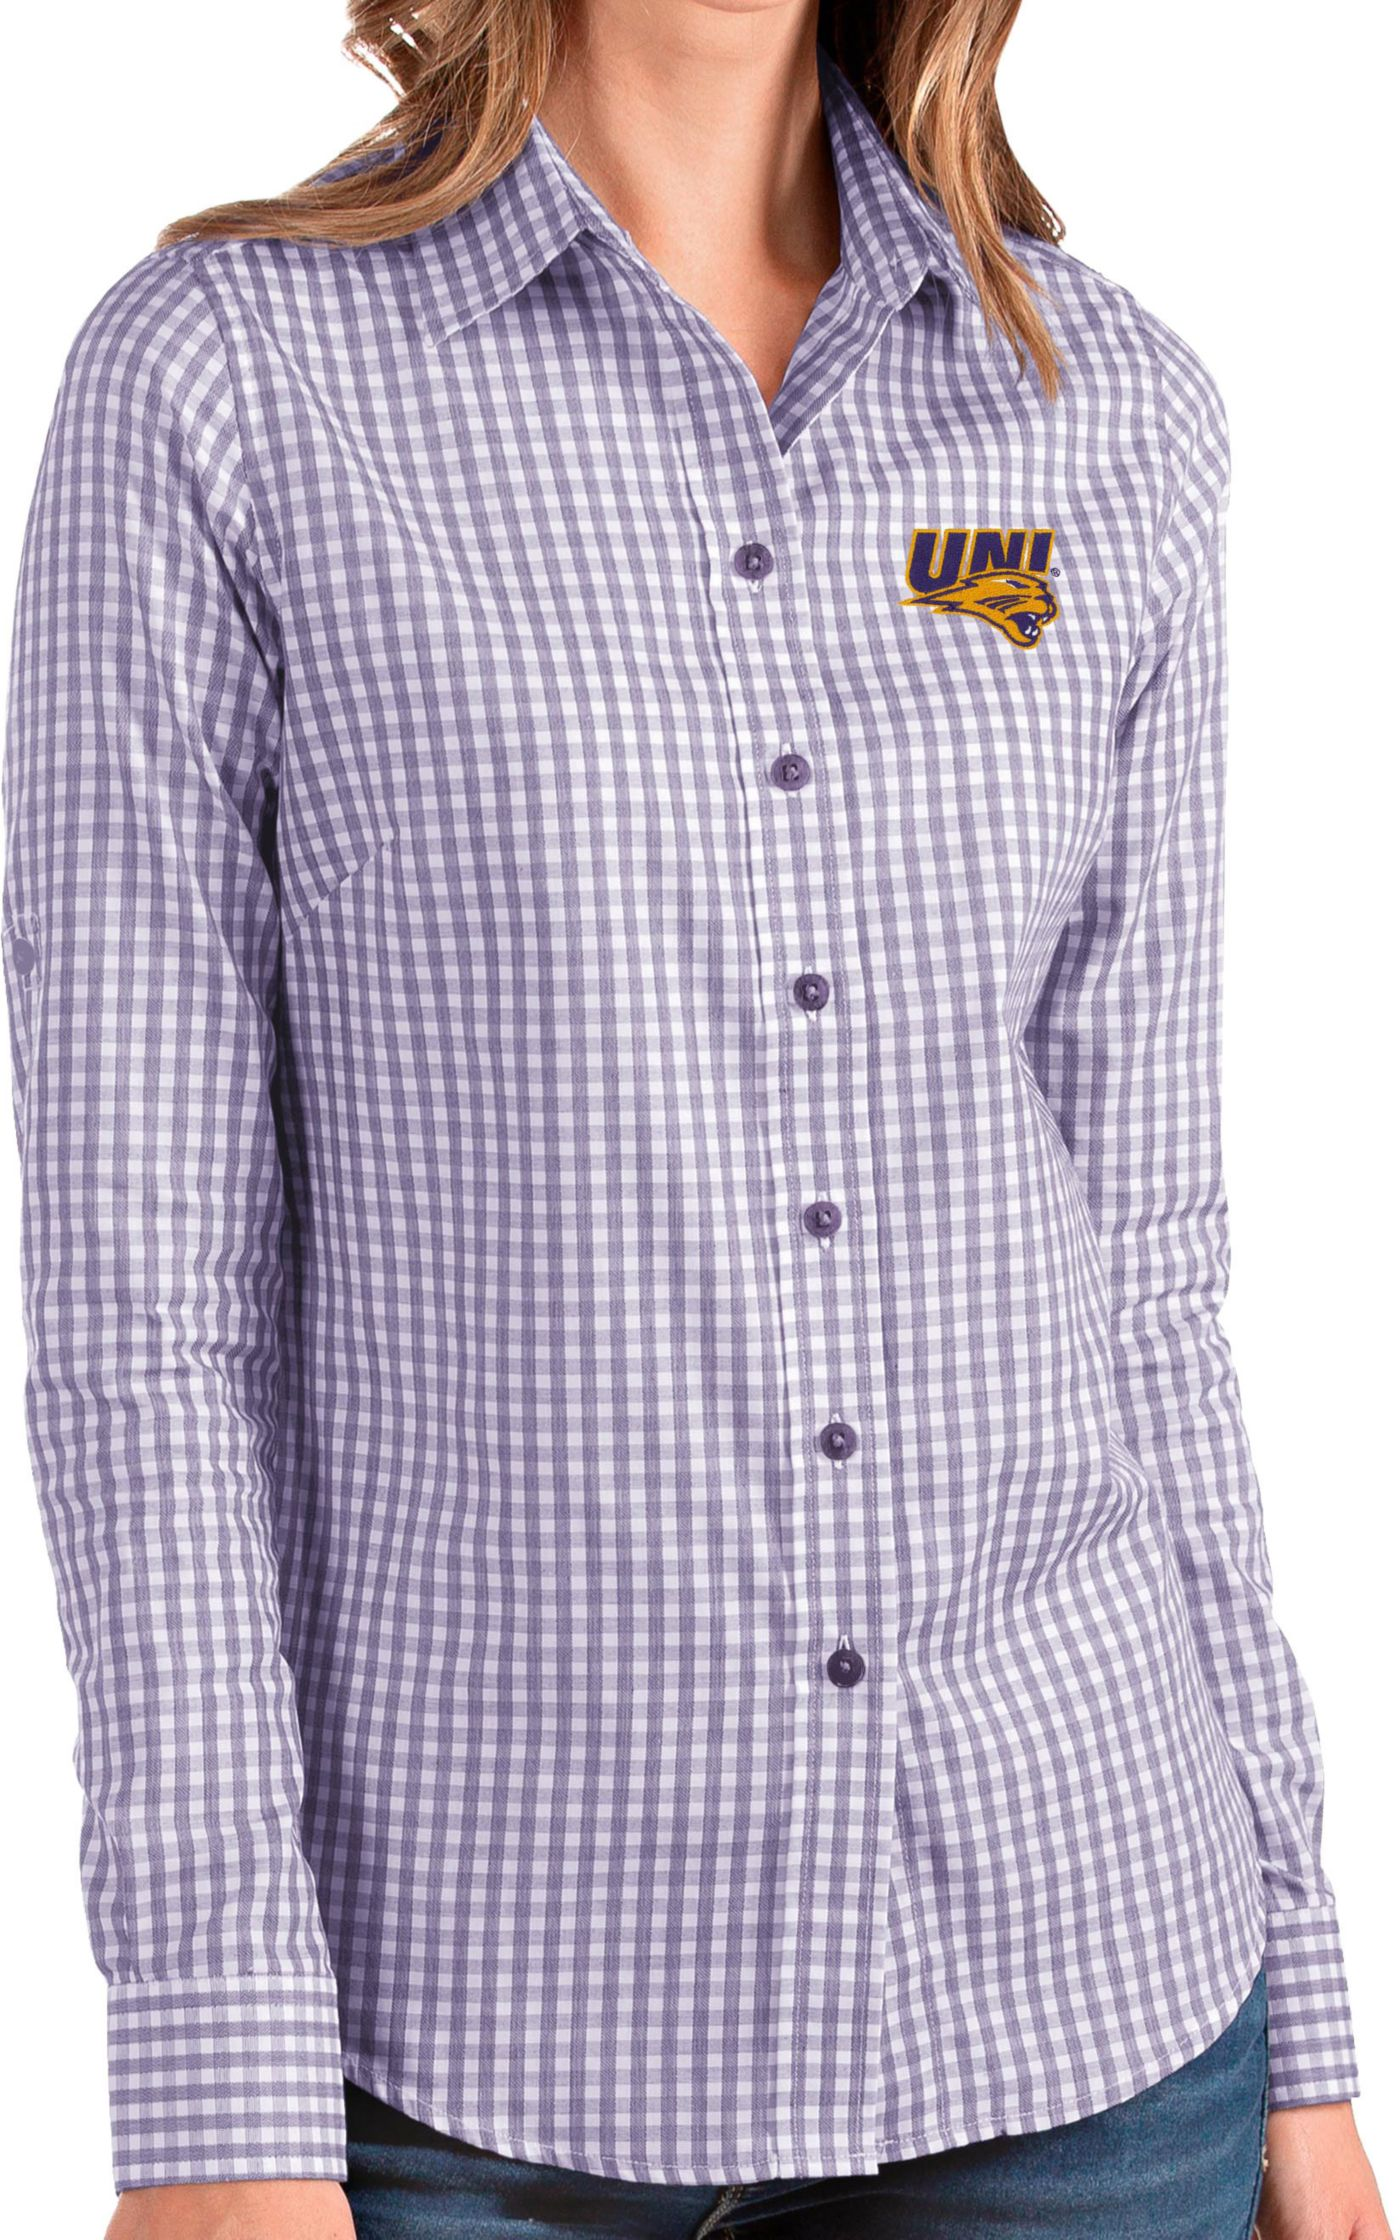 Antigua Women's Northern Iowa Panthers  Purple Structure Button Down Long Sleeve Shirt